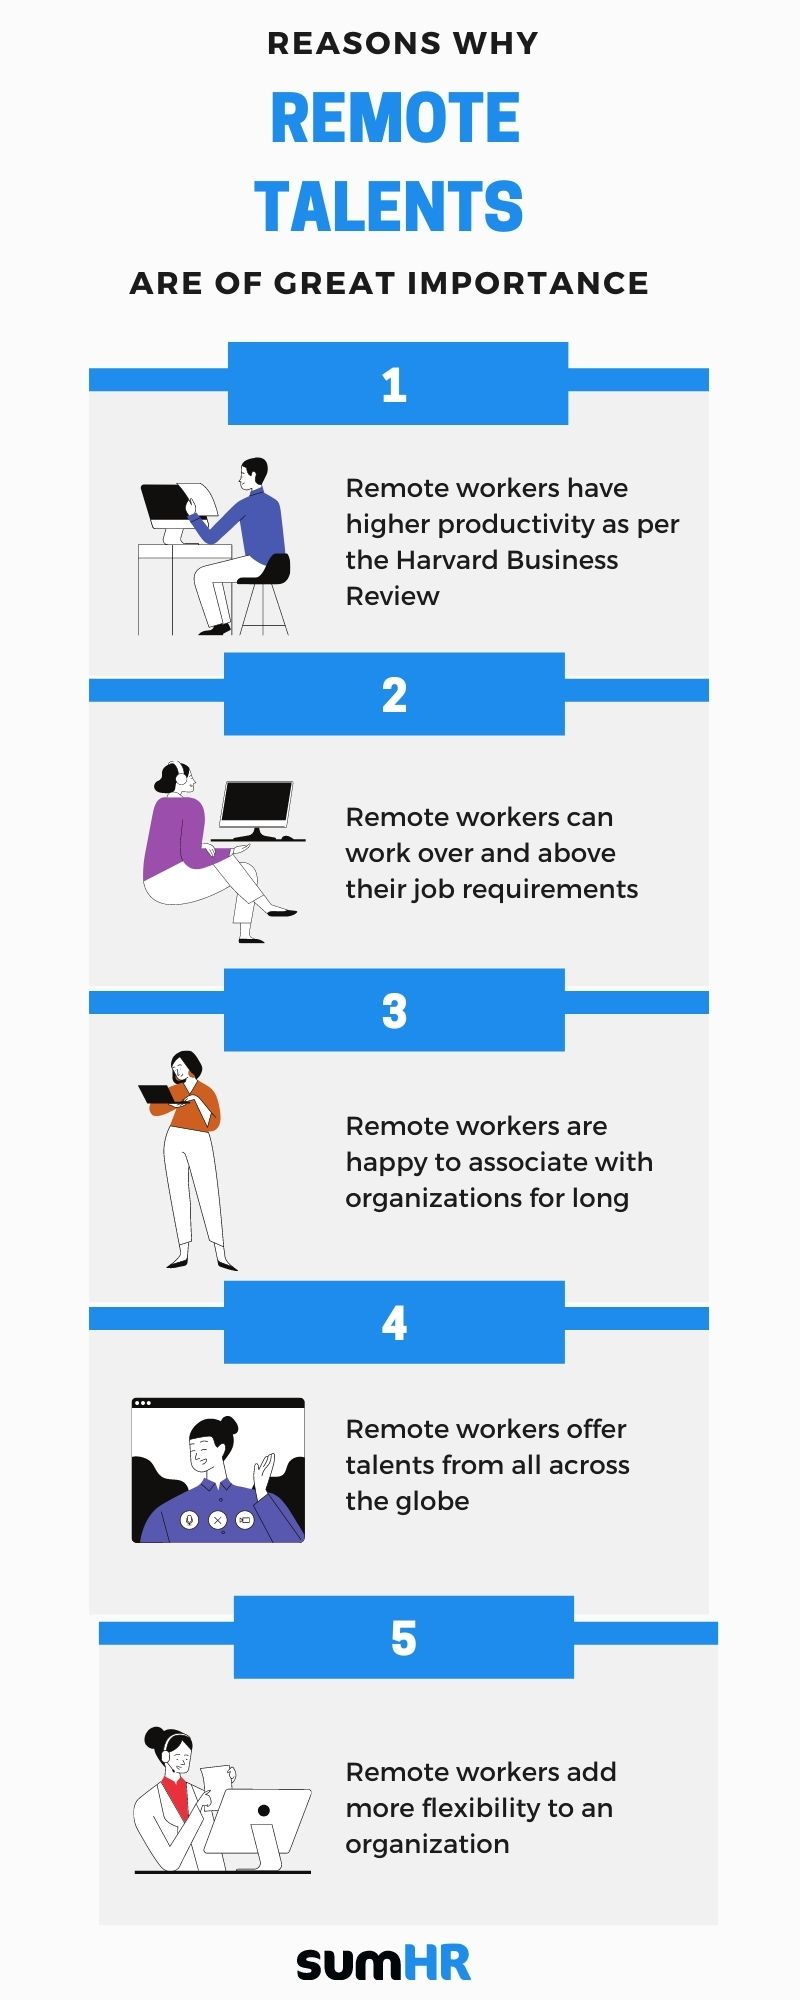 Reasons why remote talents are of great importance